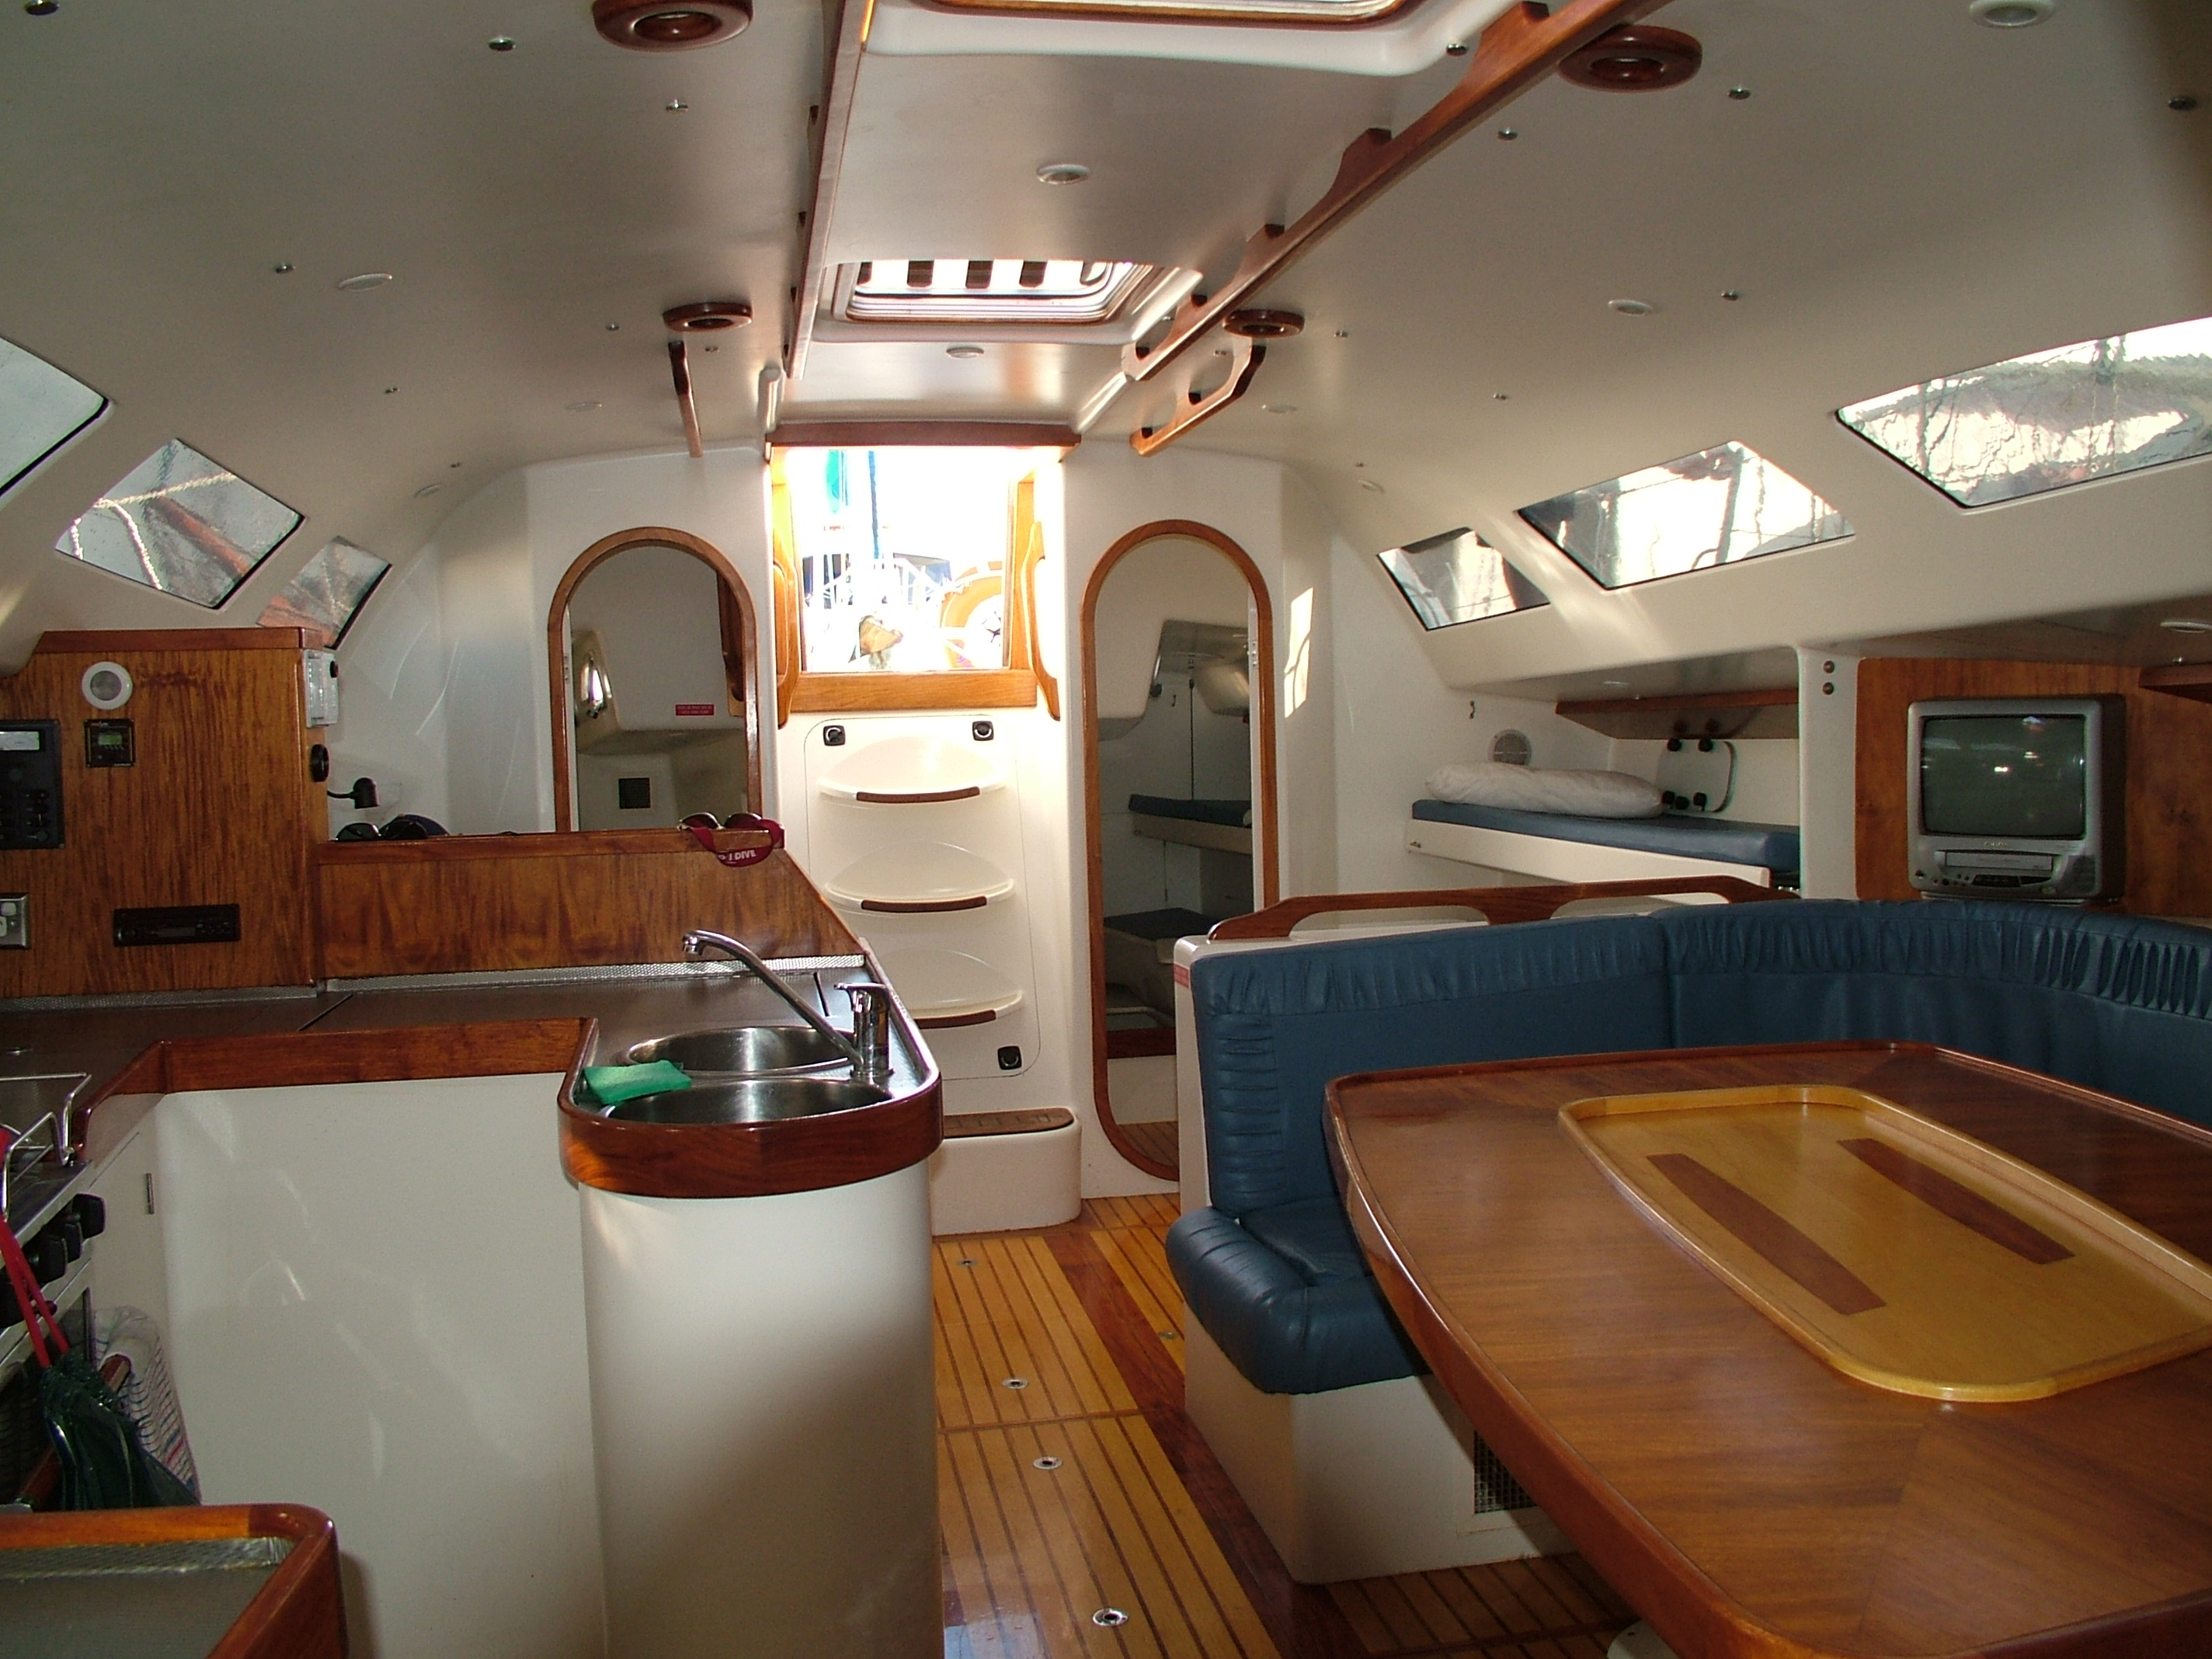 Eureke II 2 days 1 night Overnight Tour - Whitsunday Islands - Interior